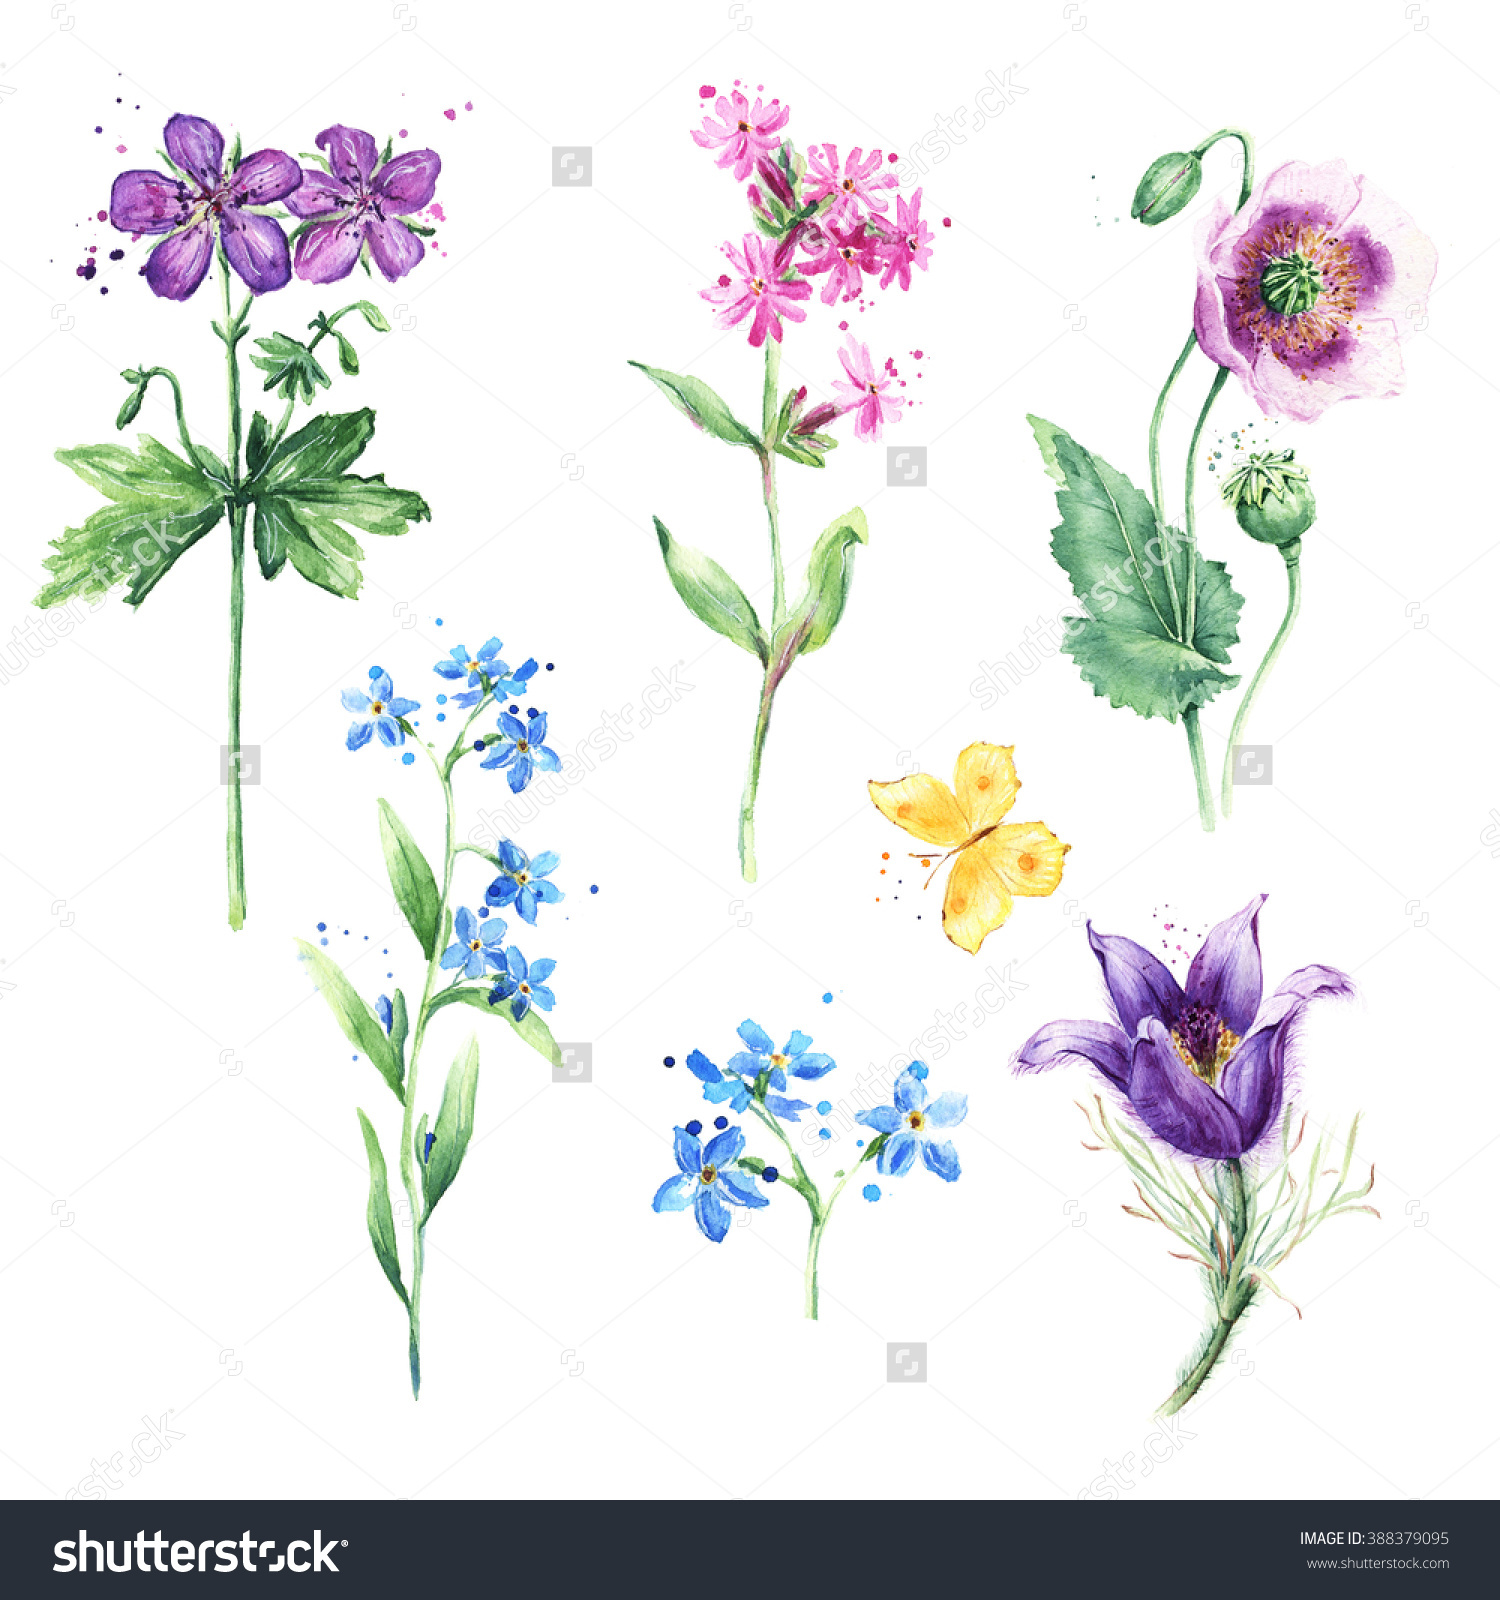 Meadow Floral Set Collection Wild Flowers Stock Illustration.